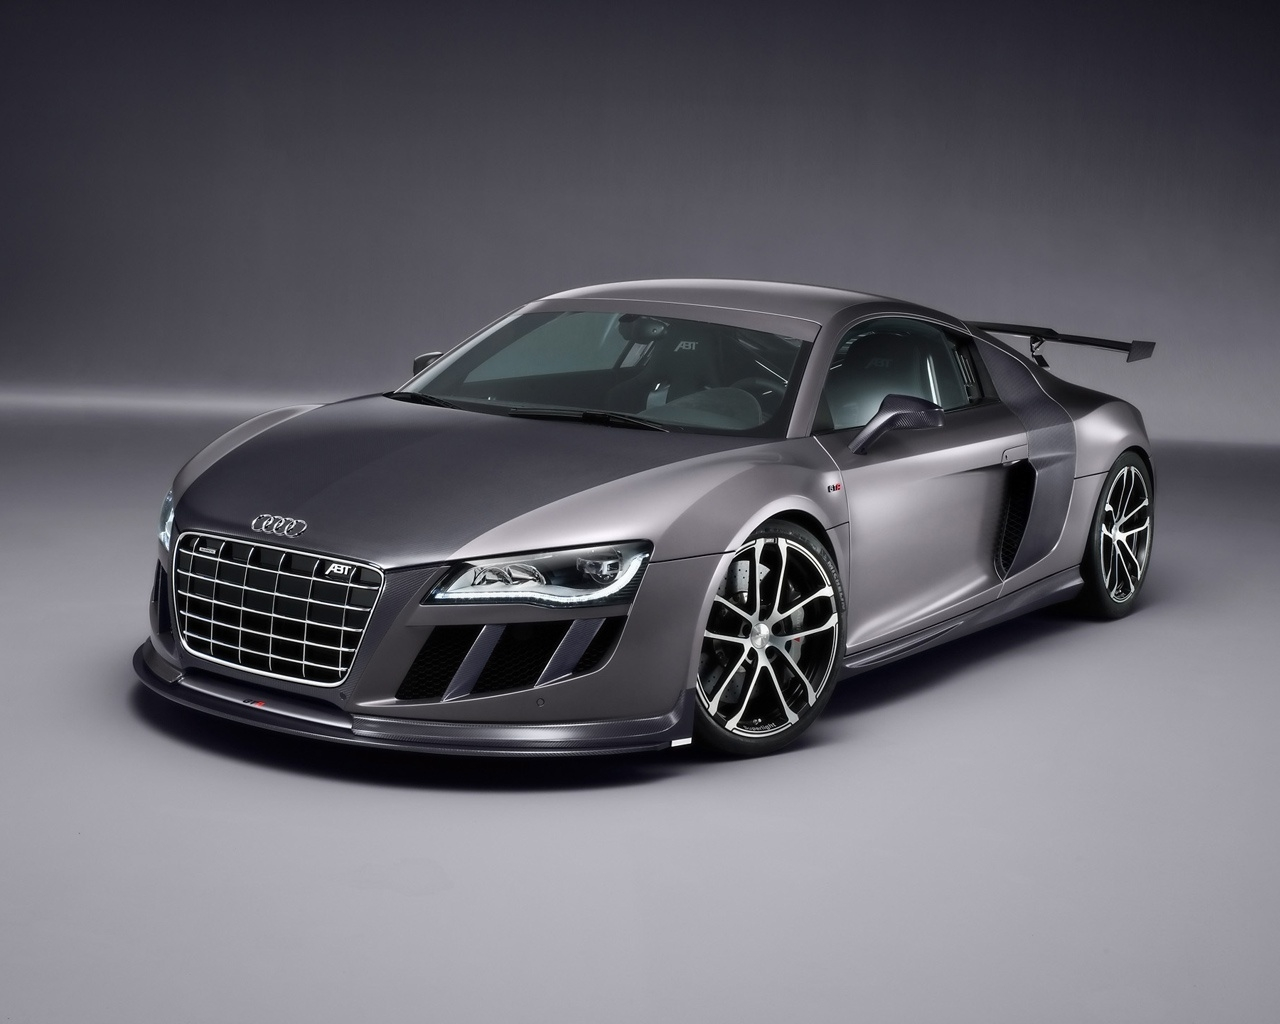 Abt Audi R8 GT-R 2010 for 1280 x 1024 resolution